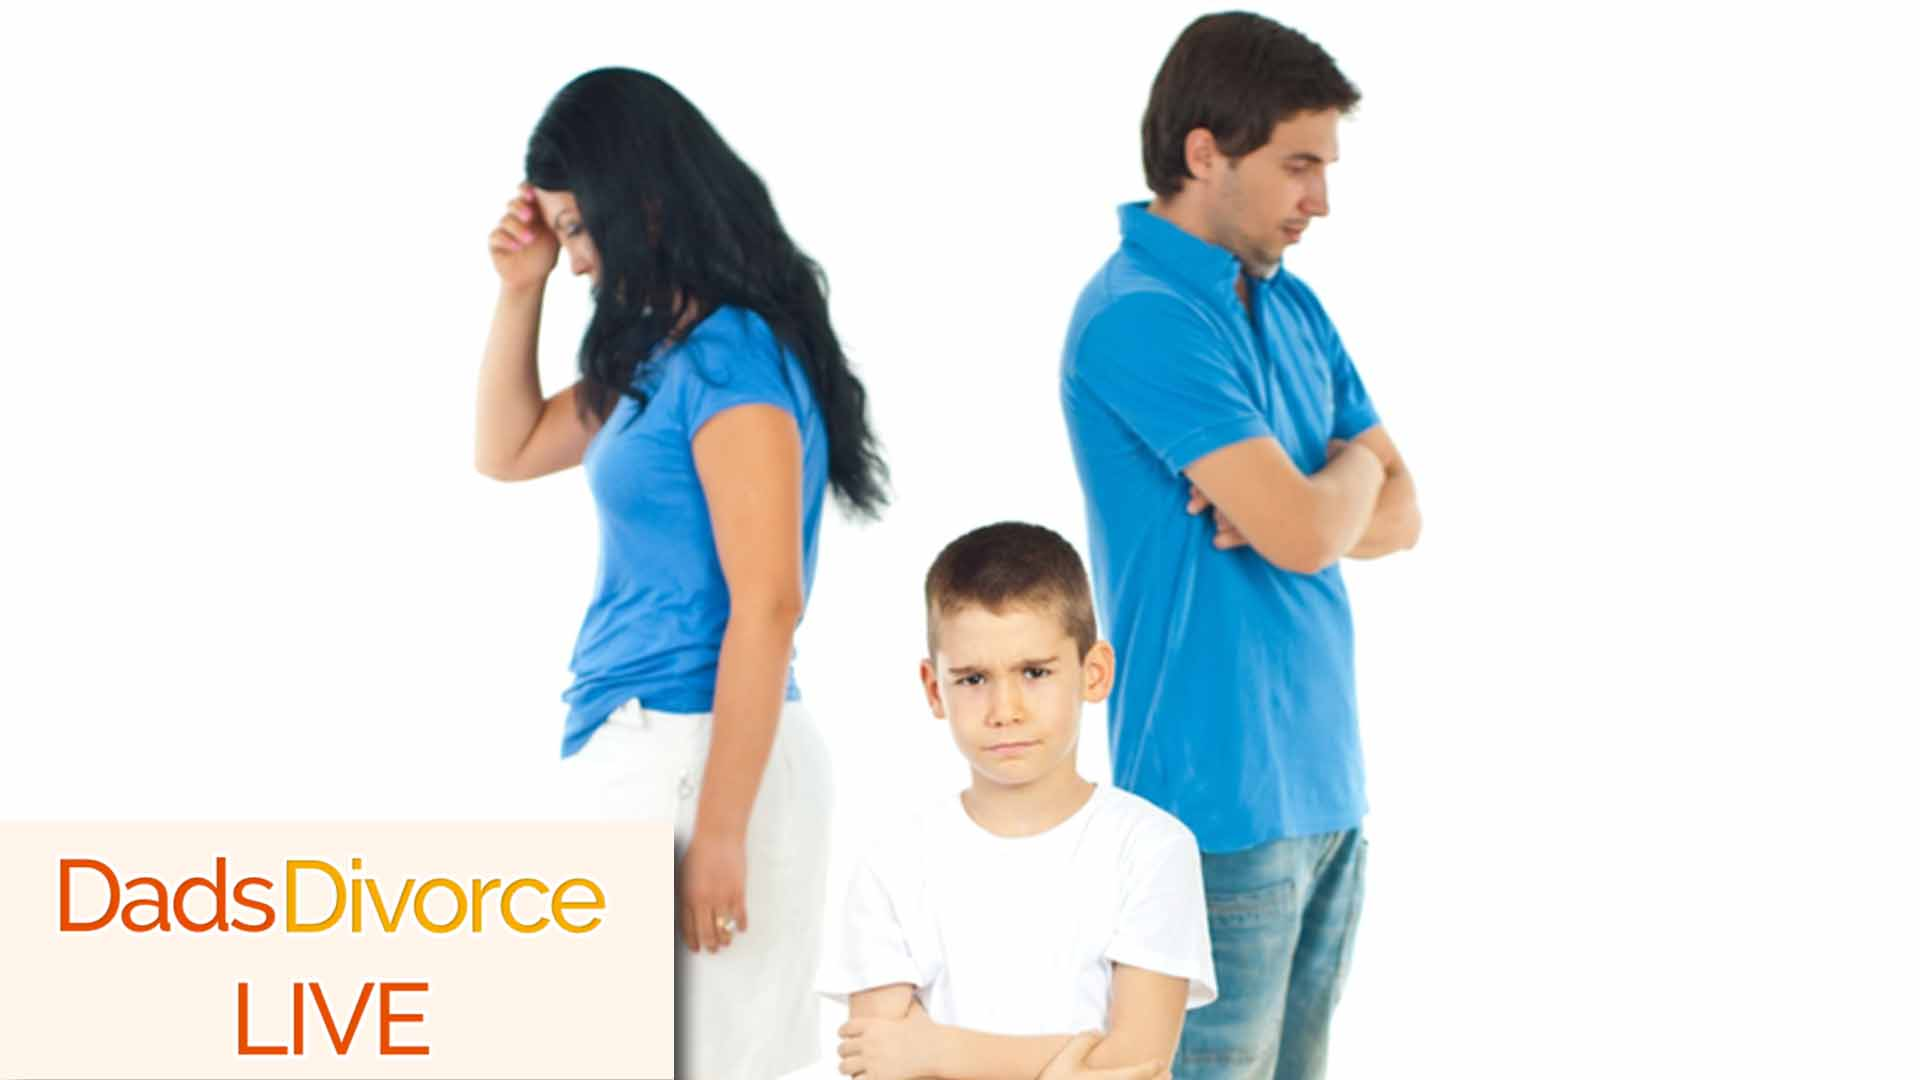 Dadsdivorce Live Co Parenting Counseling